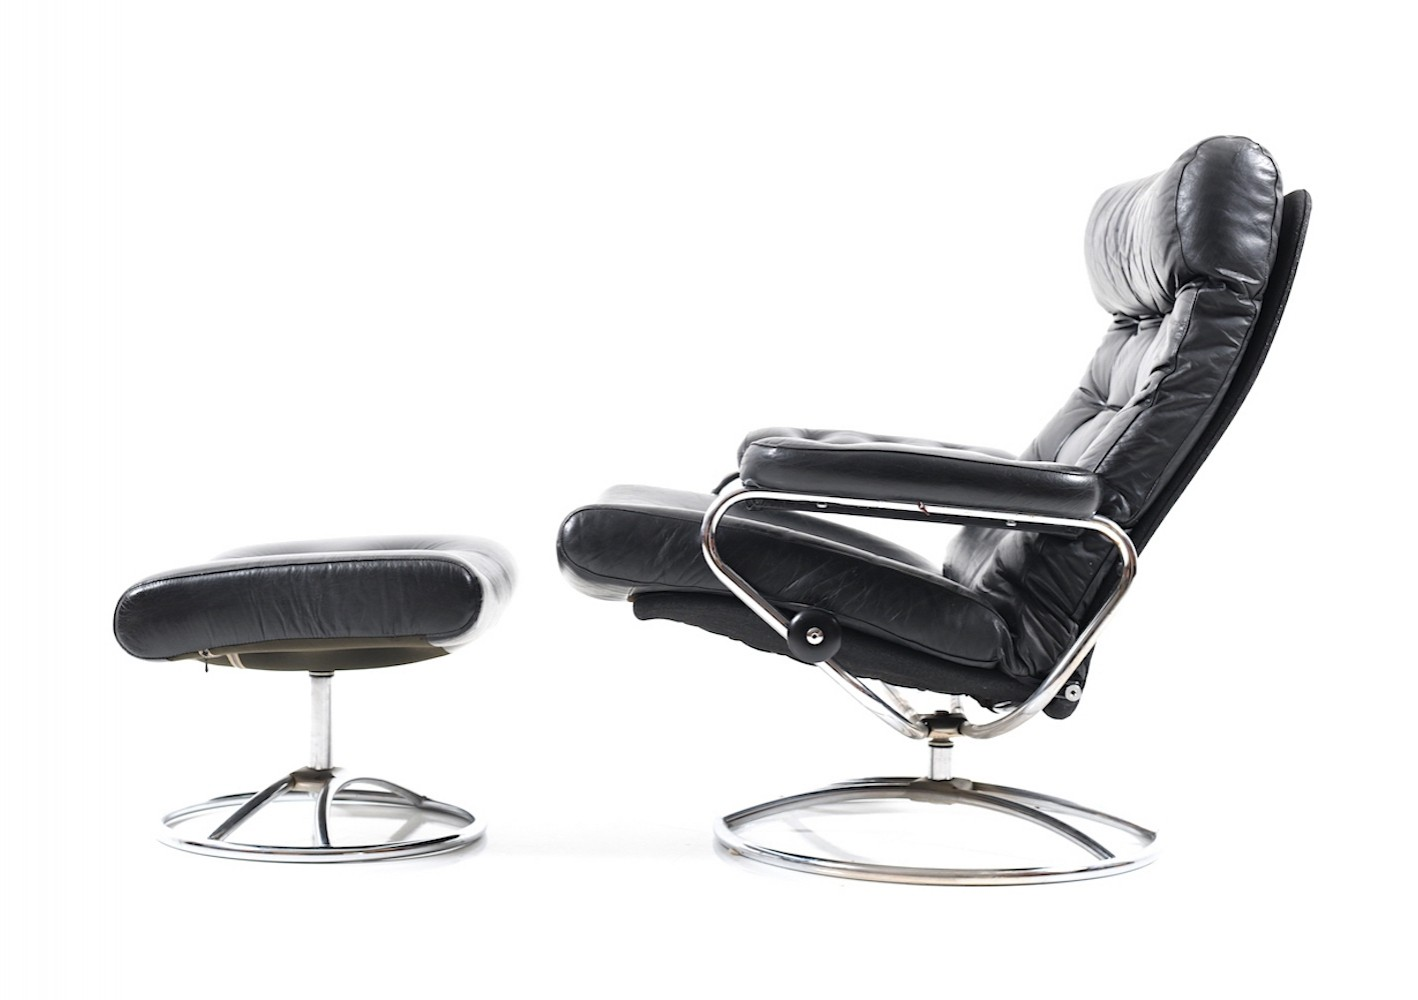 Stressless Lounge Chair U0026 Ottoman By Ekornes, 1960s